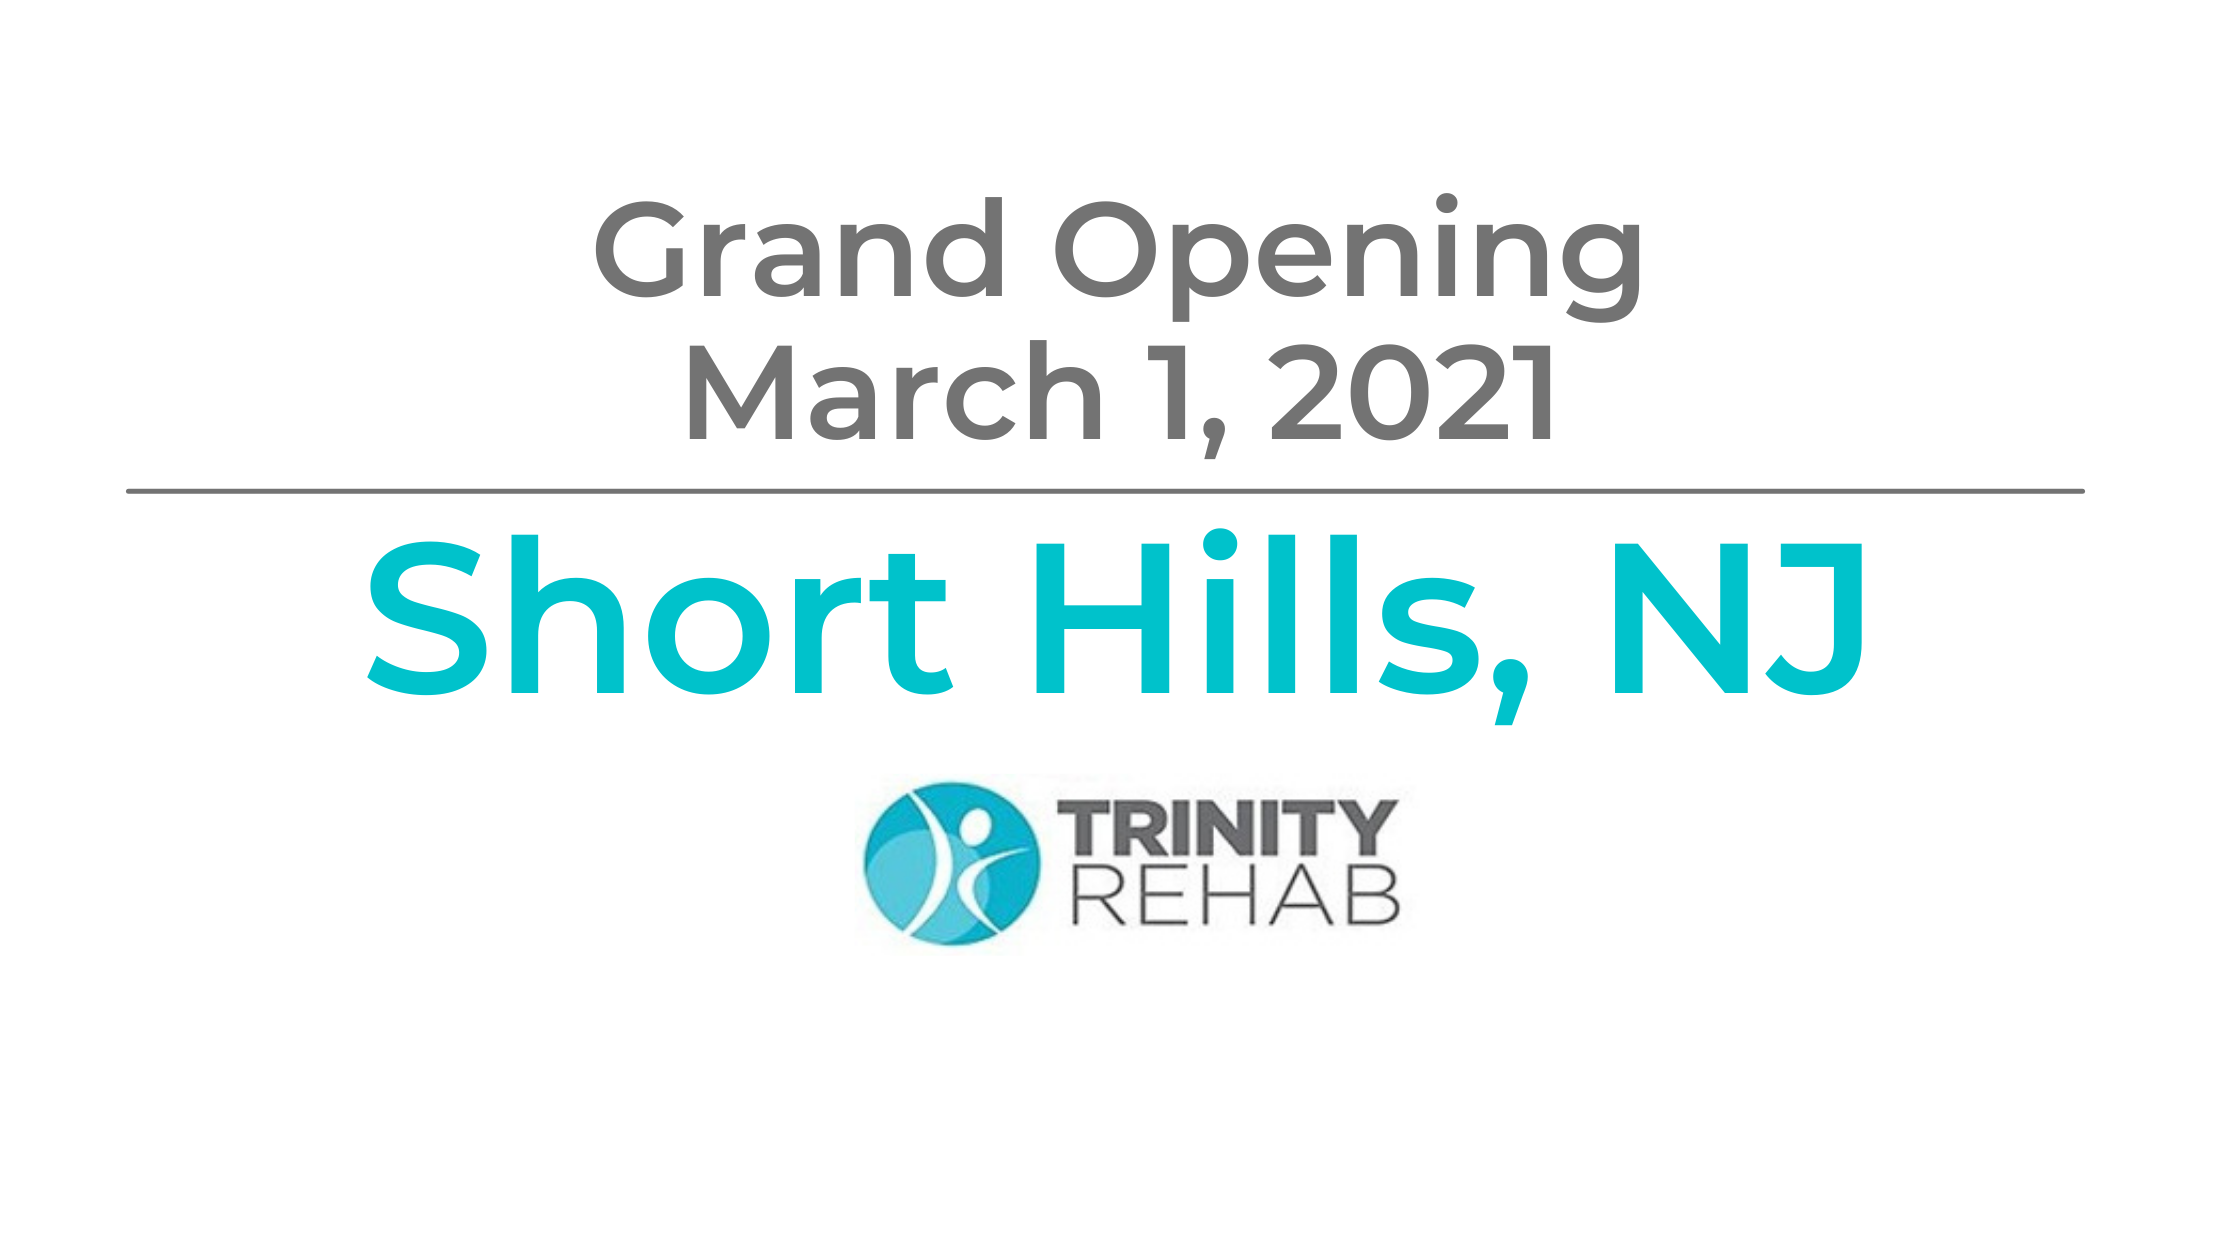 Trinity Rehab To Open New State-of-the-Art Physical Therapy Facility in Short Hills, New Jersey